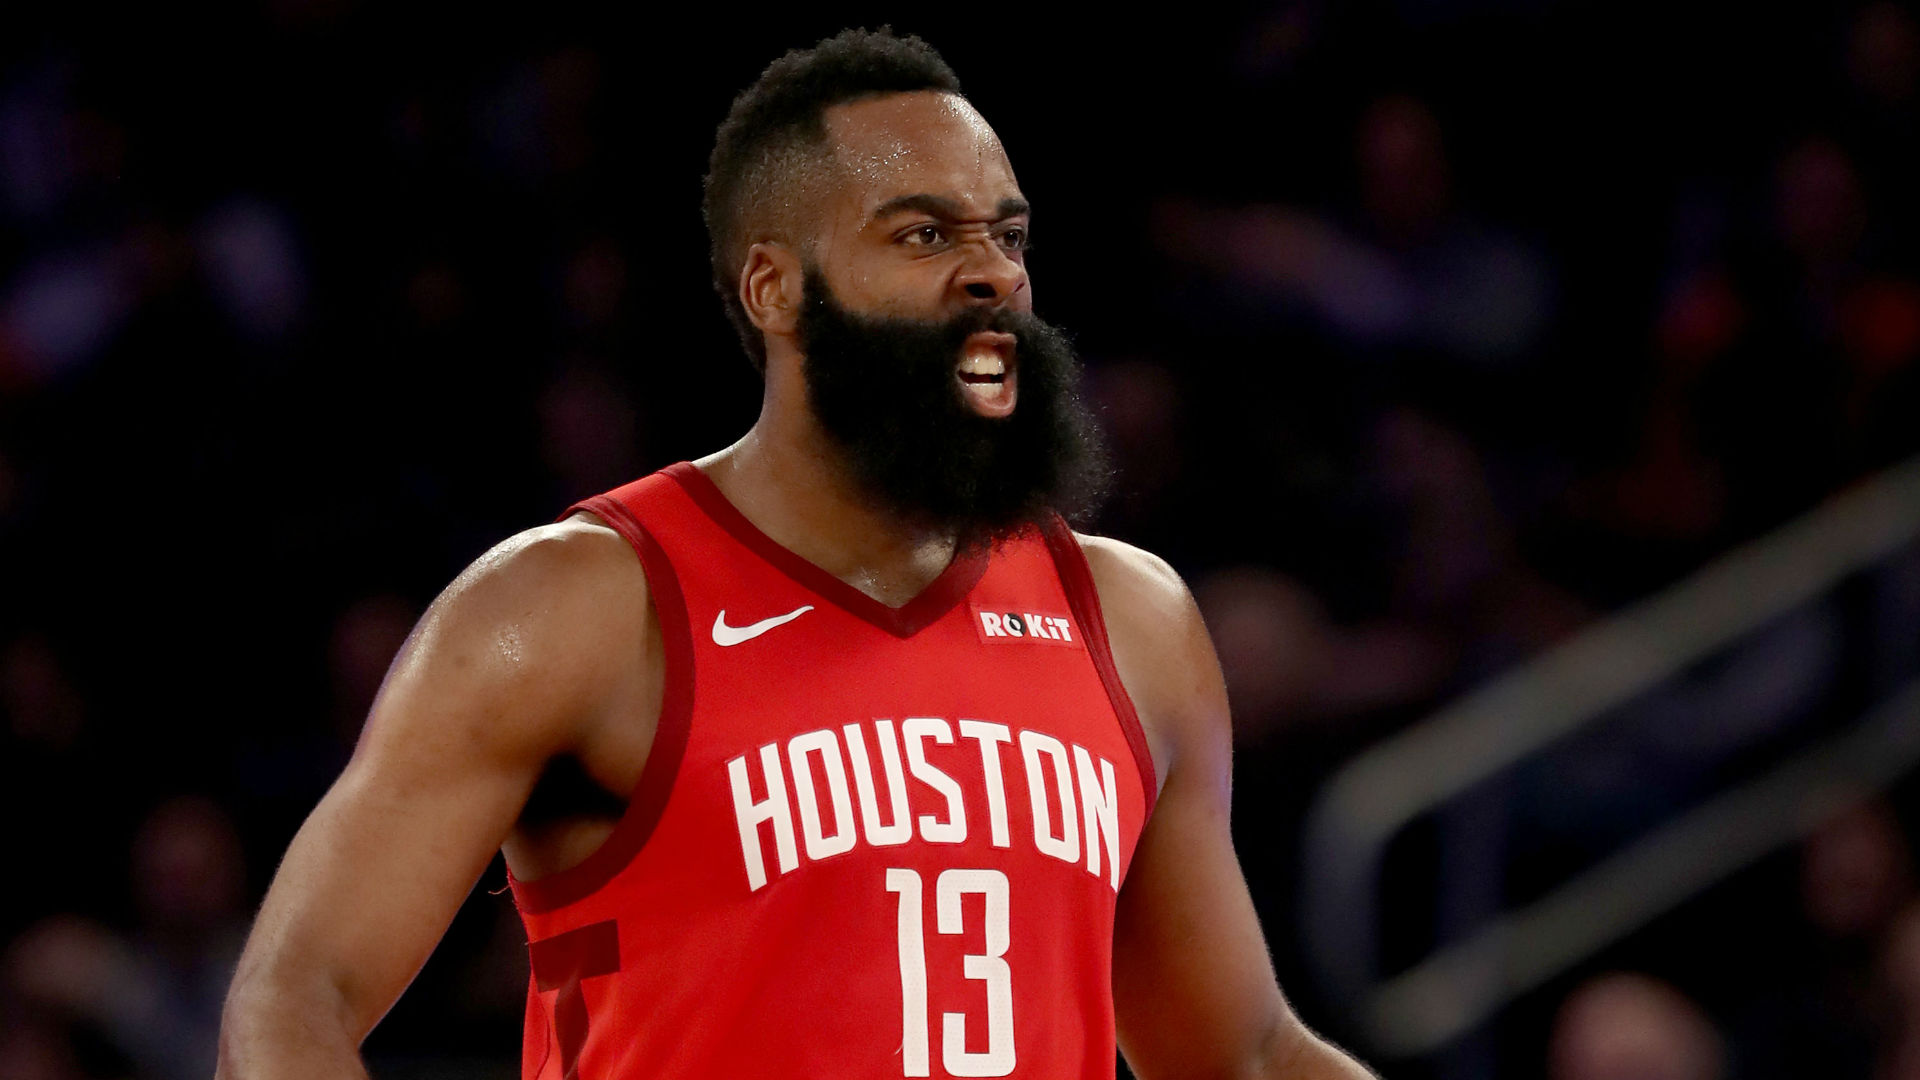 NBA playoffs 2019: James Harden's shimmy slightly mistimed in Game 2